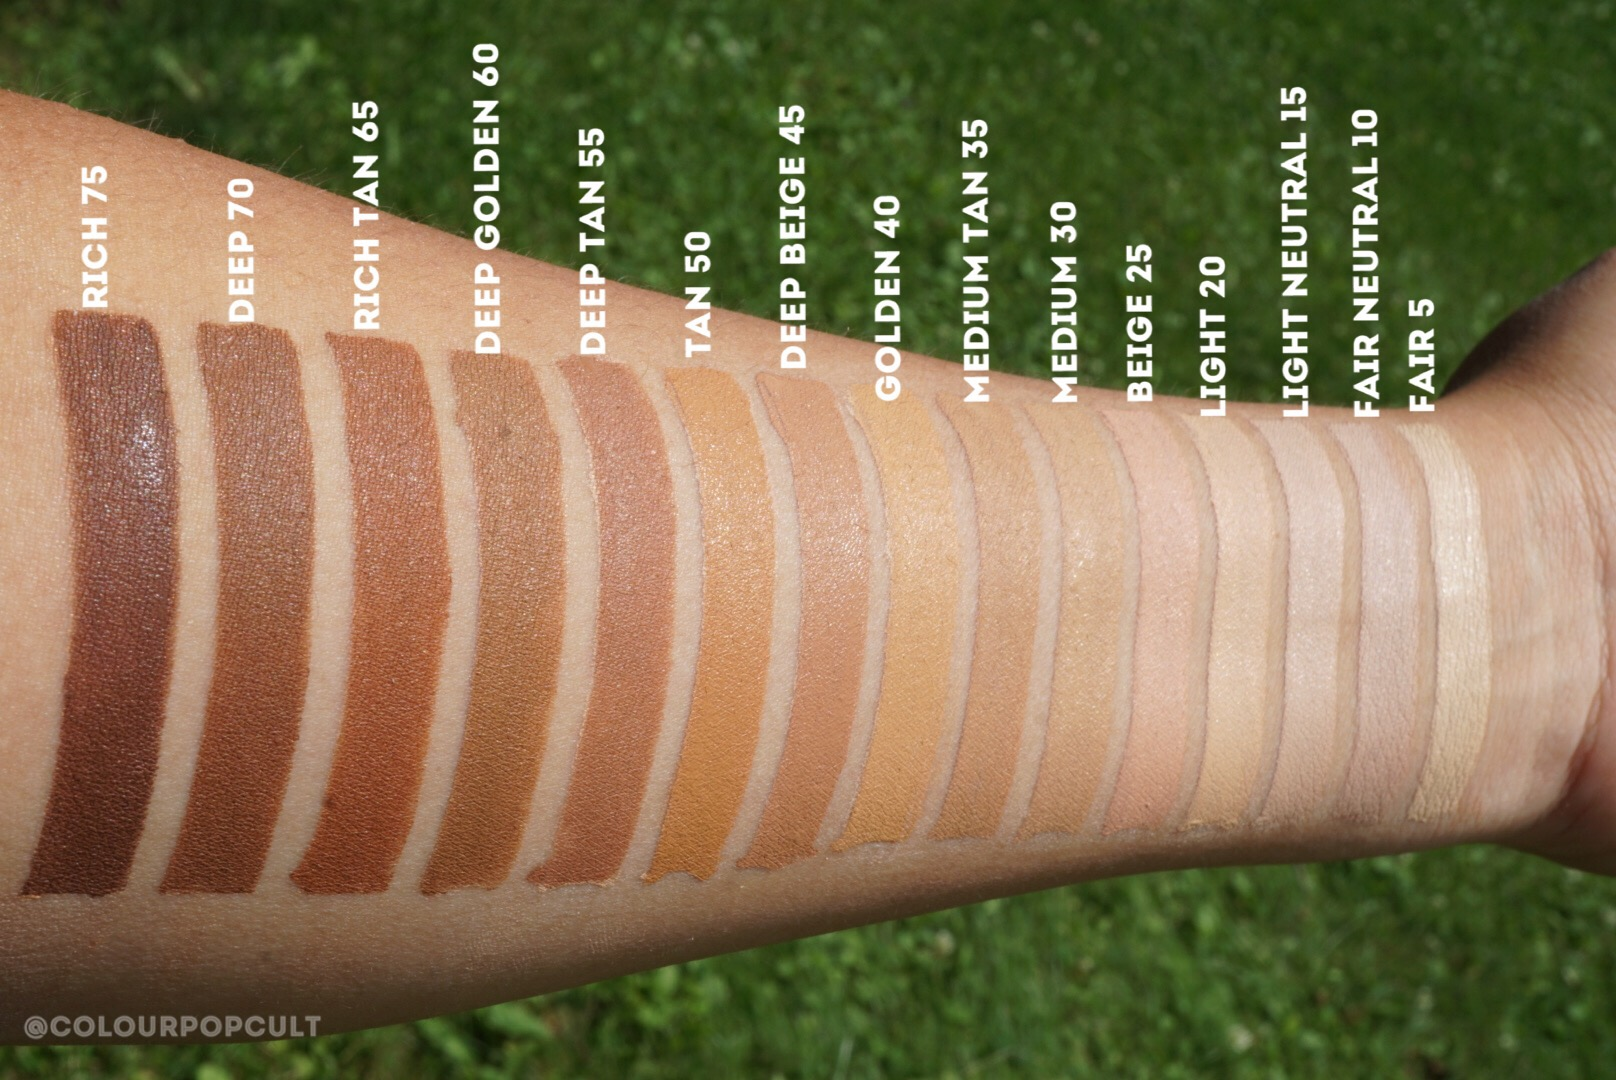 Colourpop Cosmetics No Filter Concealer Reviews And Swatches And Brushes Overview Our Beauty Cult